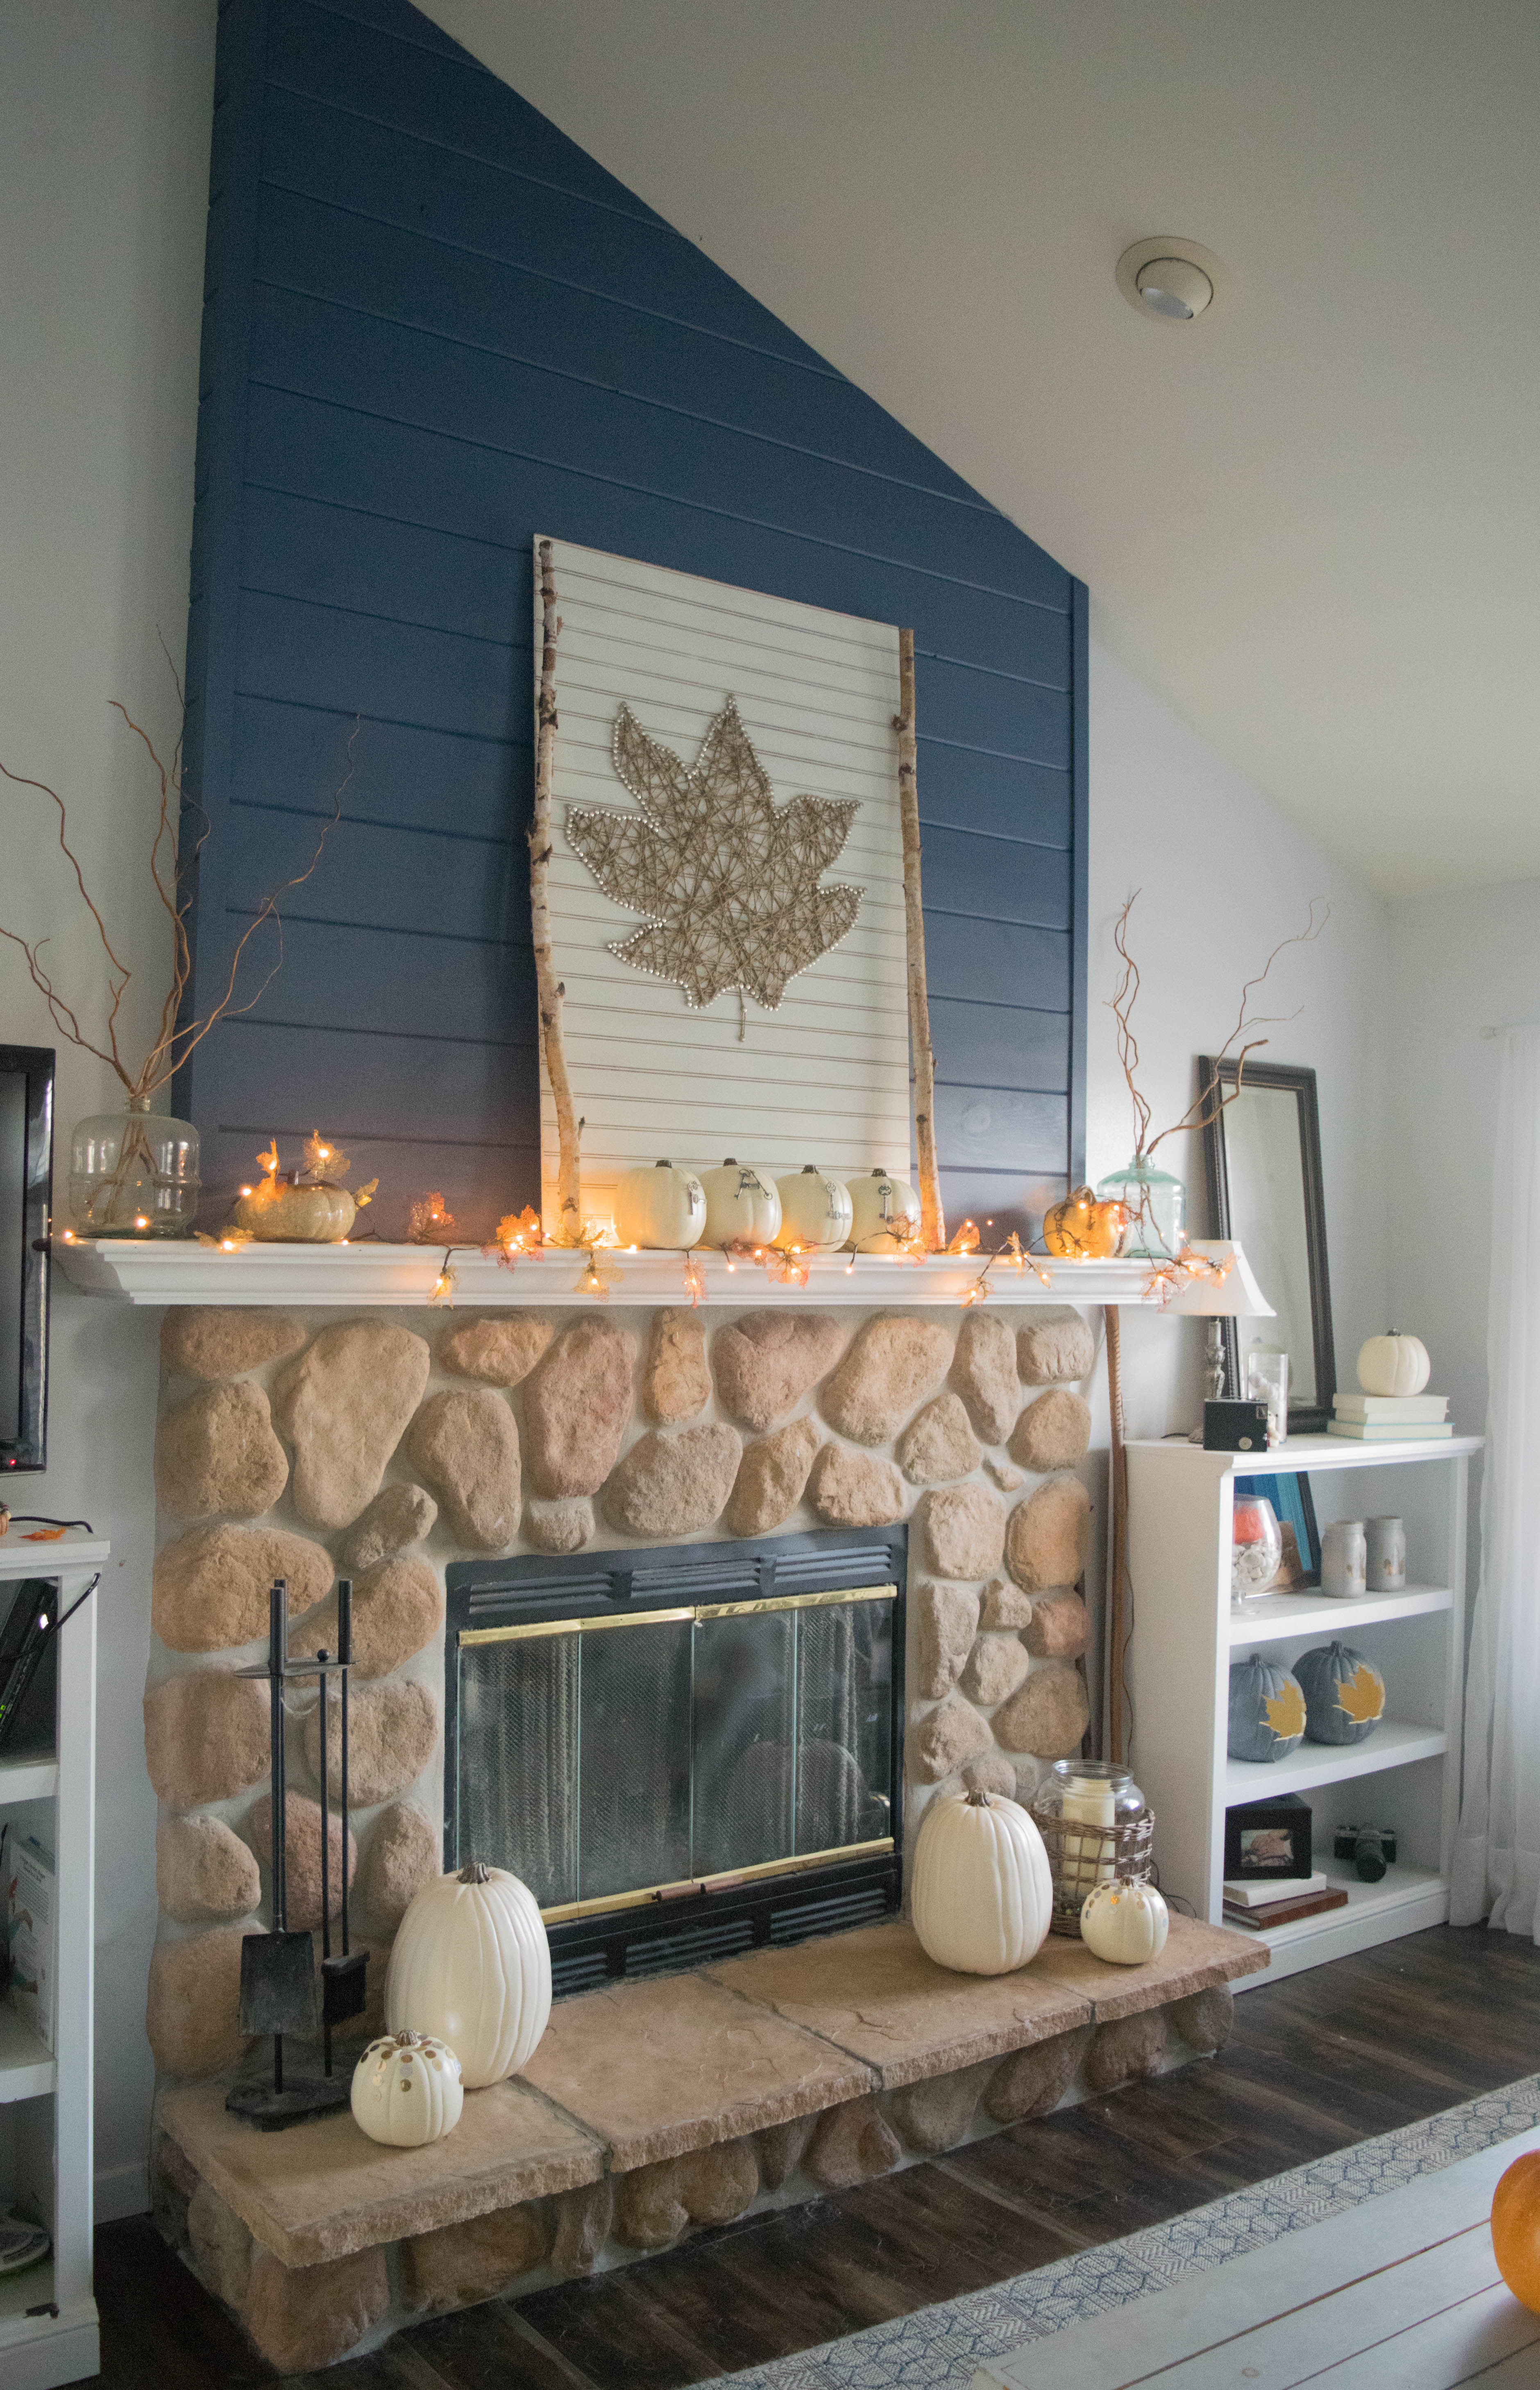 Best ideas about DIY Fireplace Mantel Ideas . Save or Pin DIY fireplace mantel decor ideas 1 of 1 • Our House Now Now.